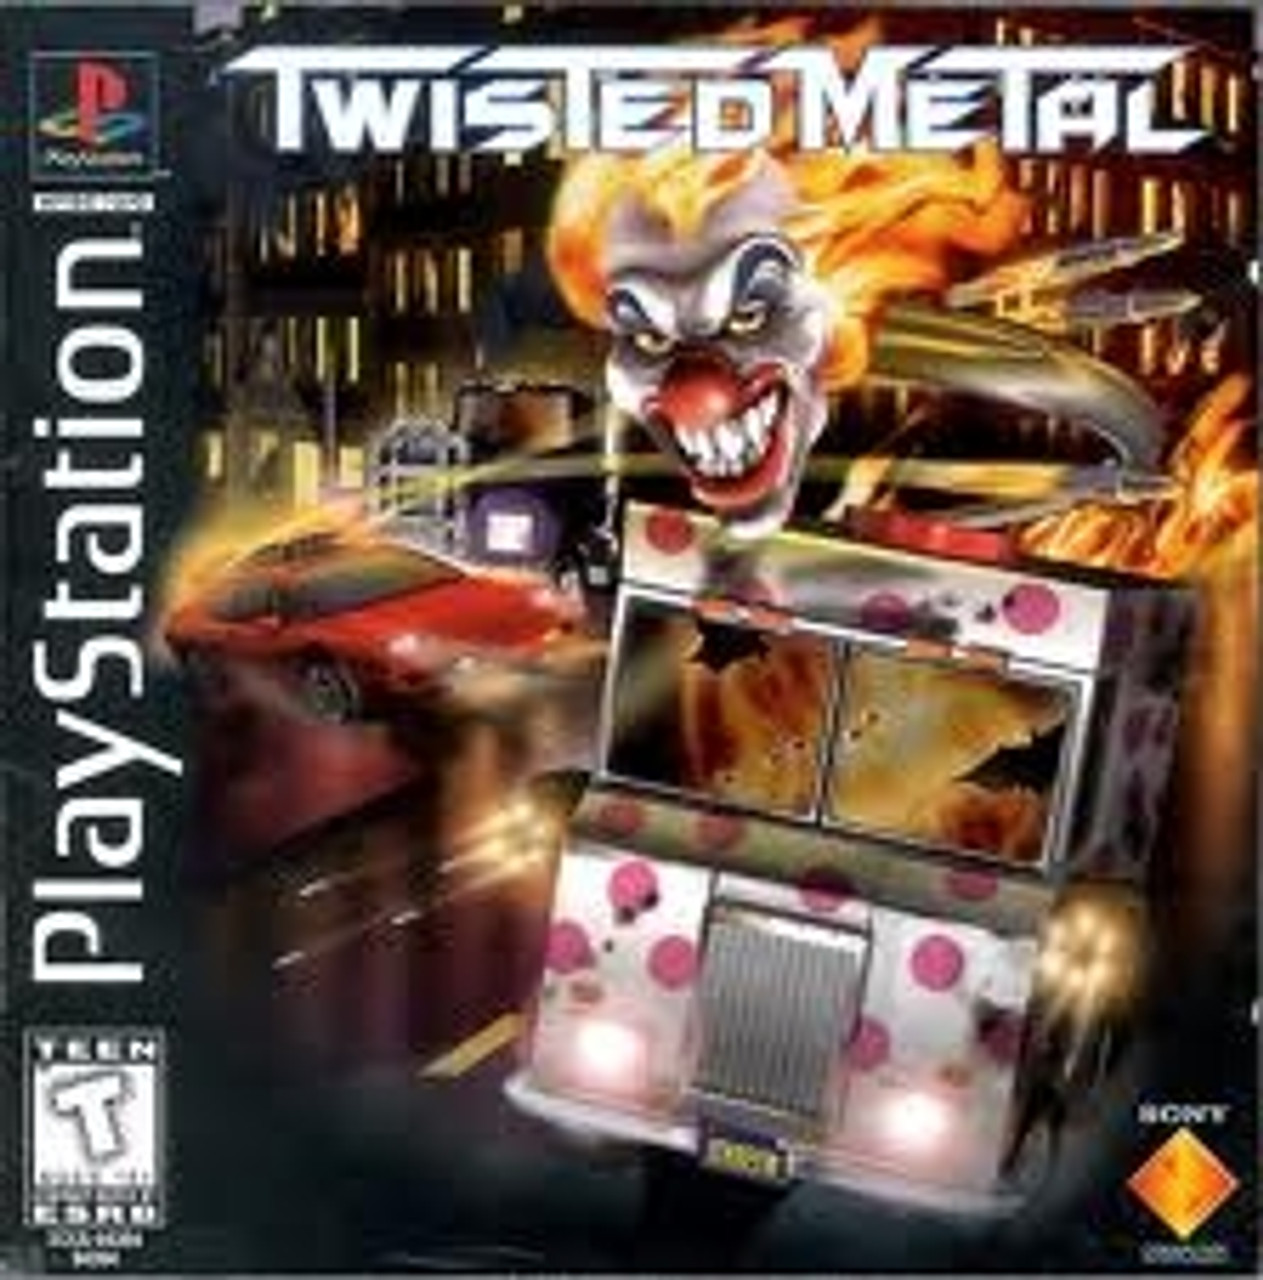 Twisted Metal Playstation 1995, capa do jogo!